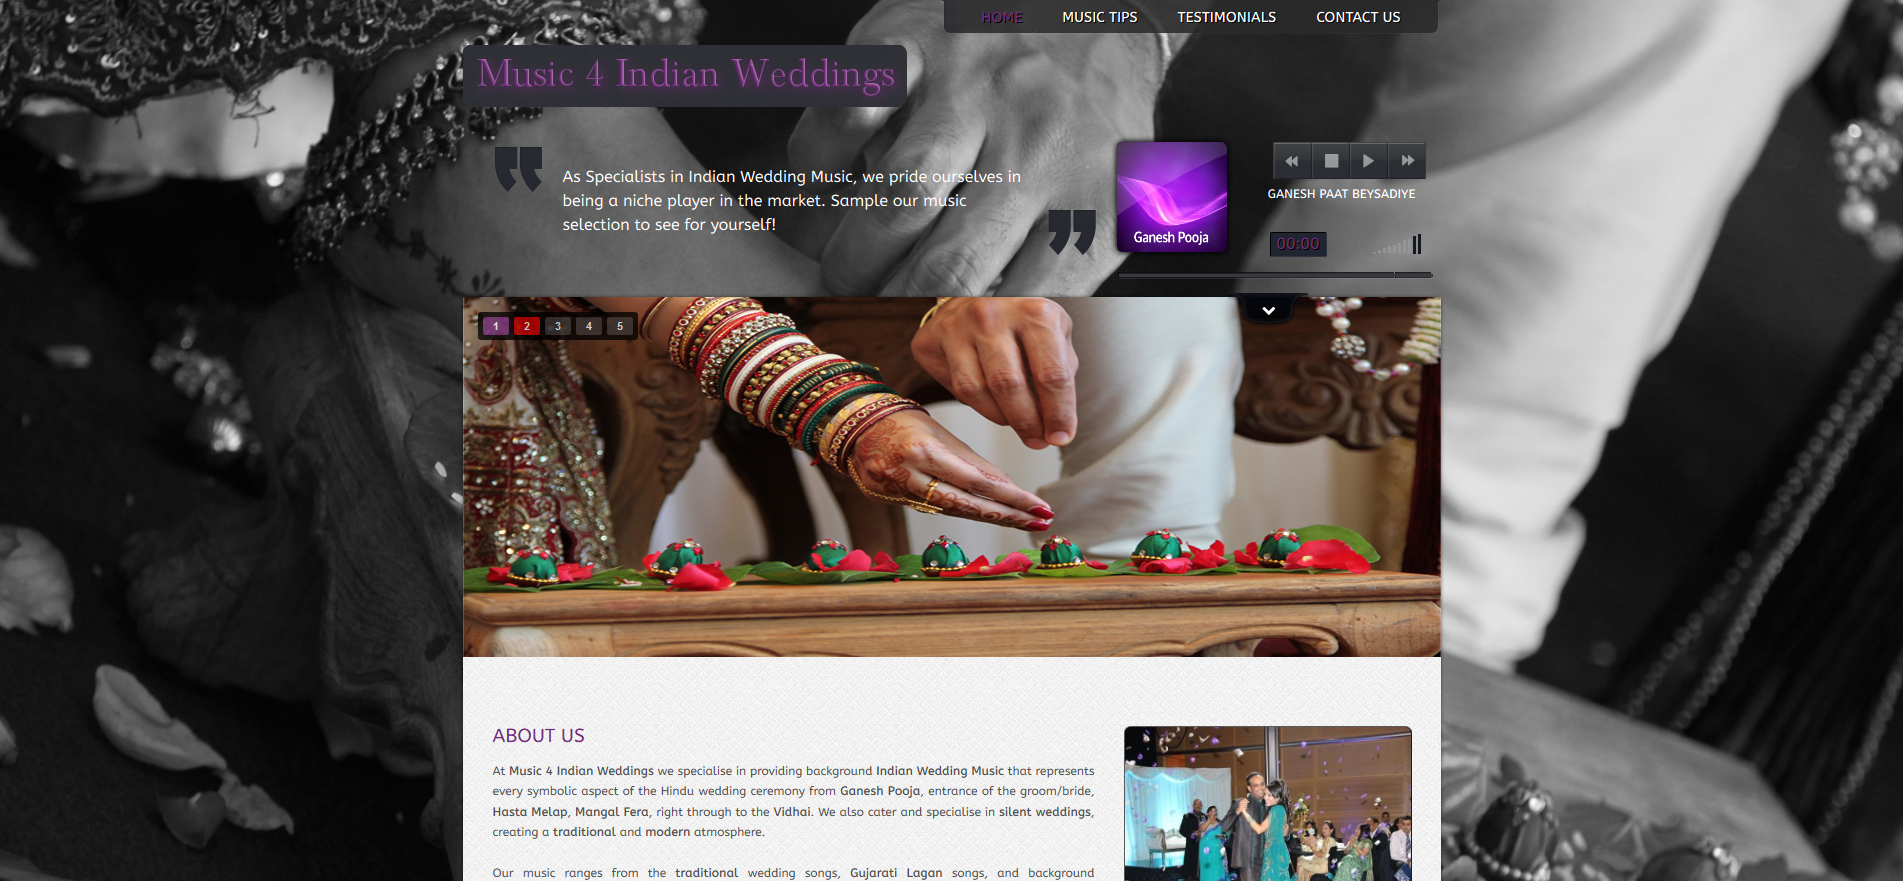 www.music4indianweddings.co.uk